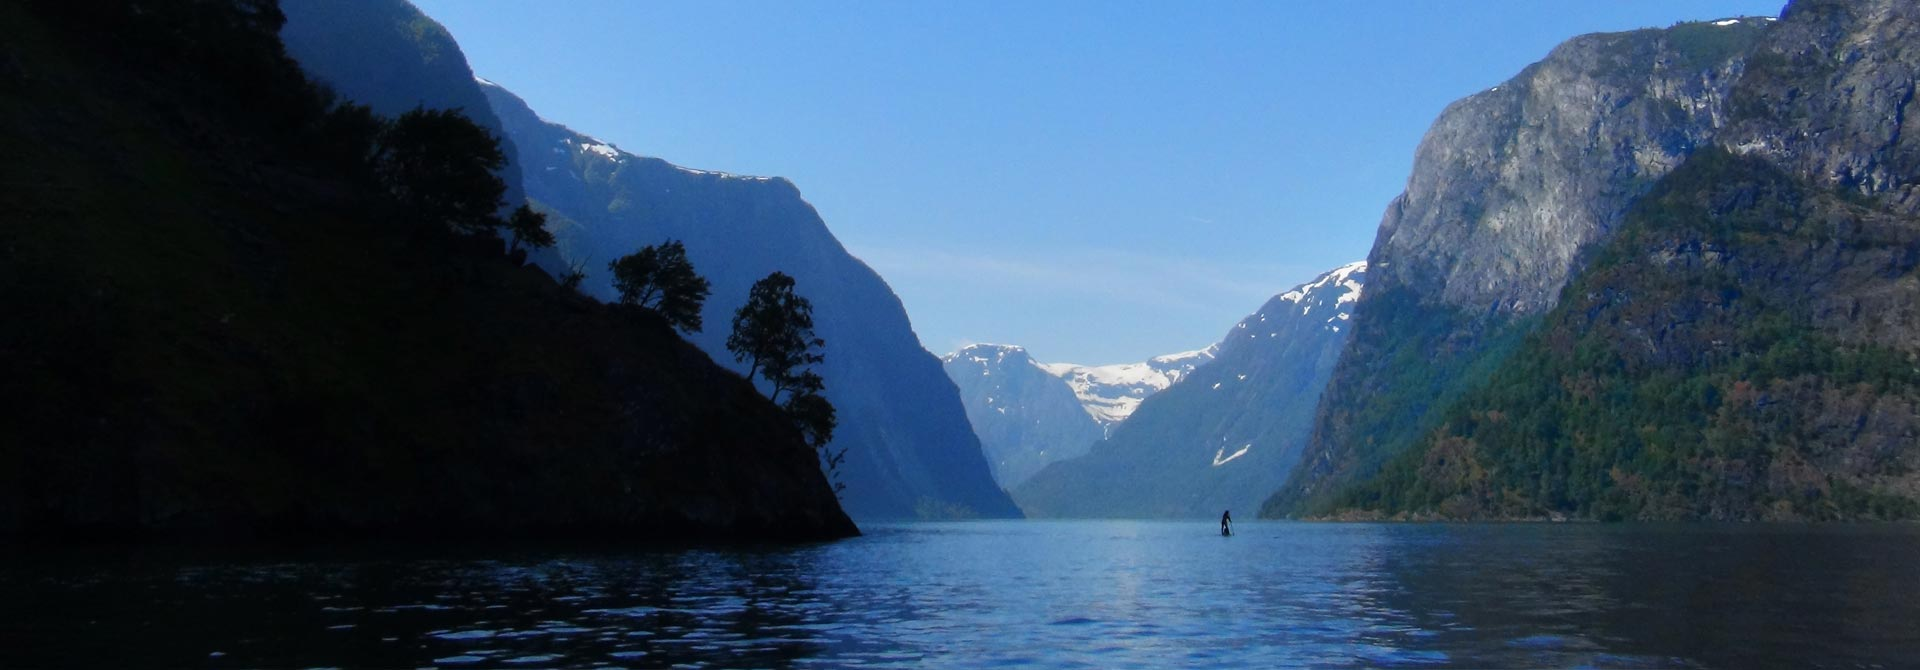 SUP Norway - Lonely paddler